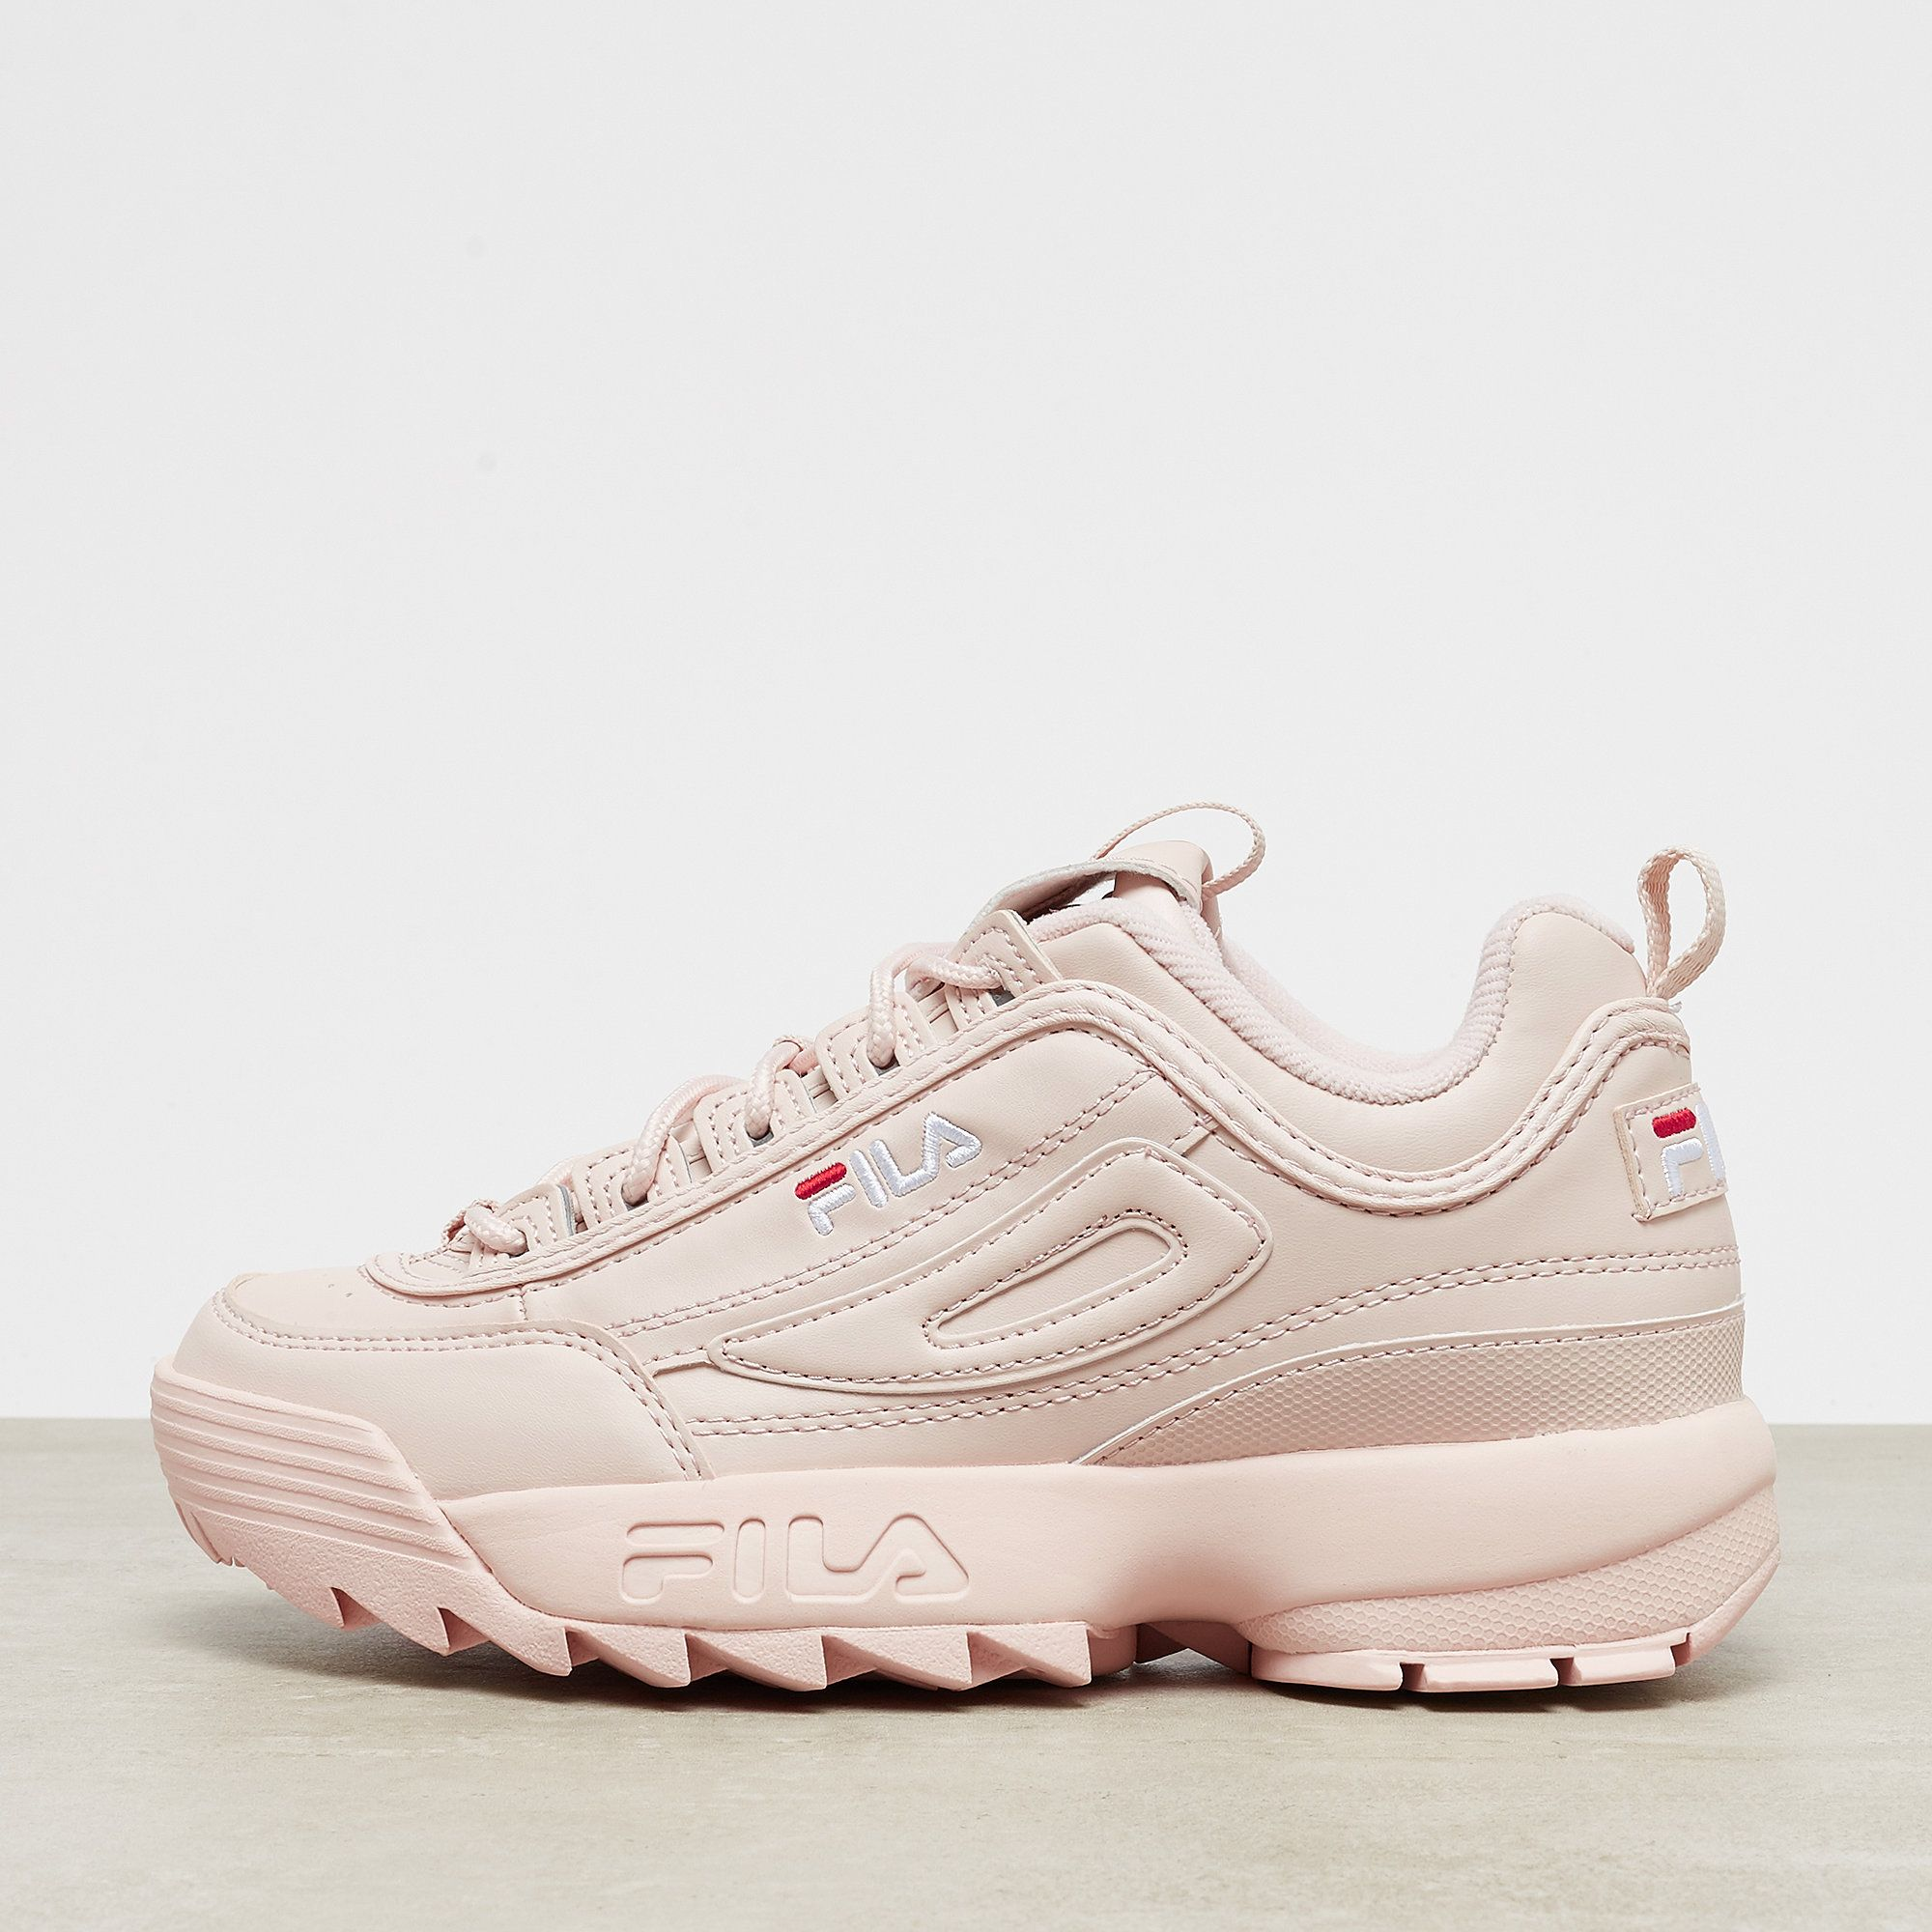 Fila Disruptor Low peach whip | Shoes in 2019 | Fila schuhe ...